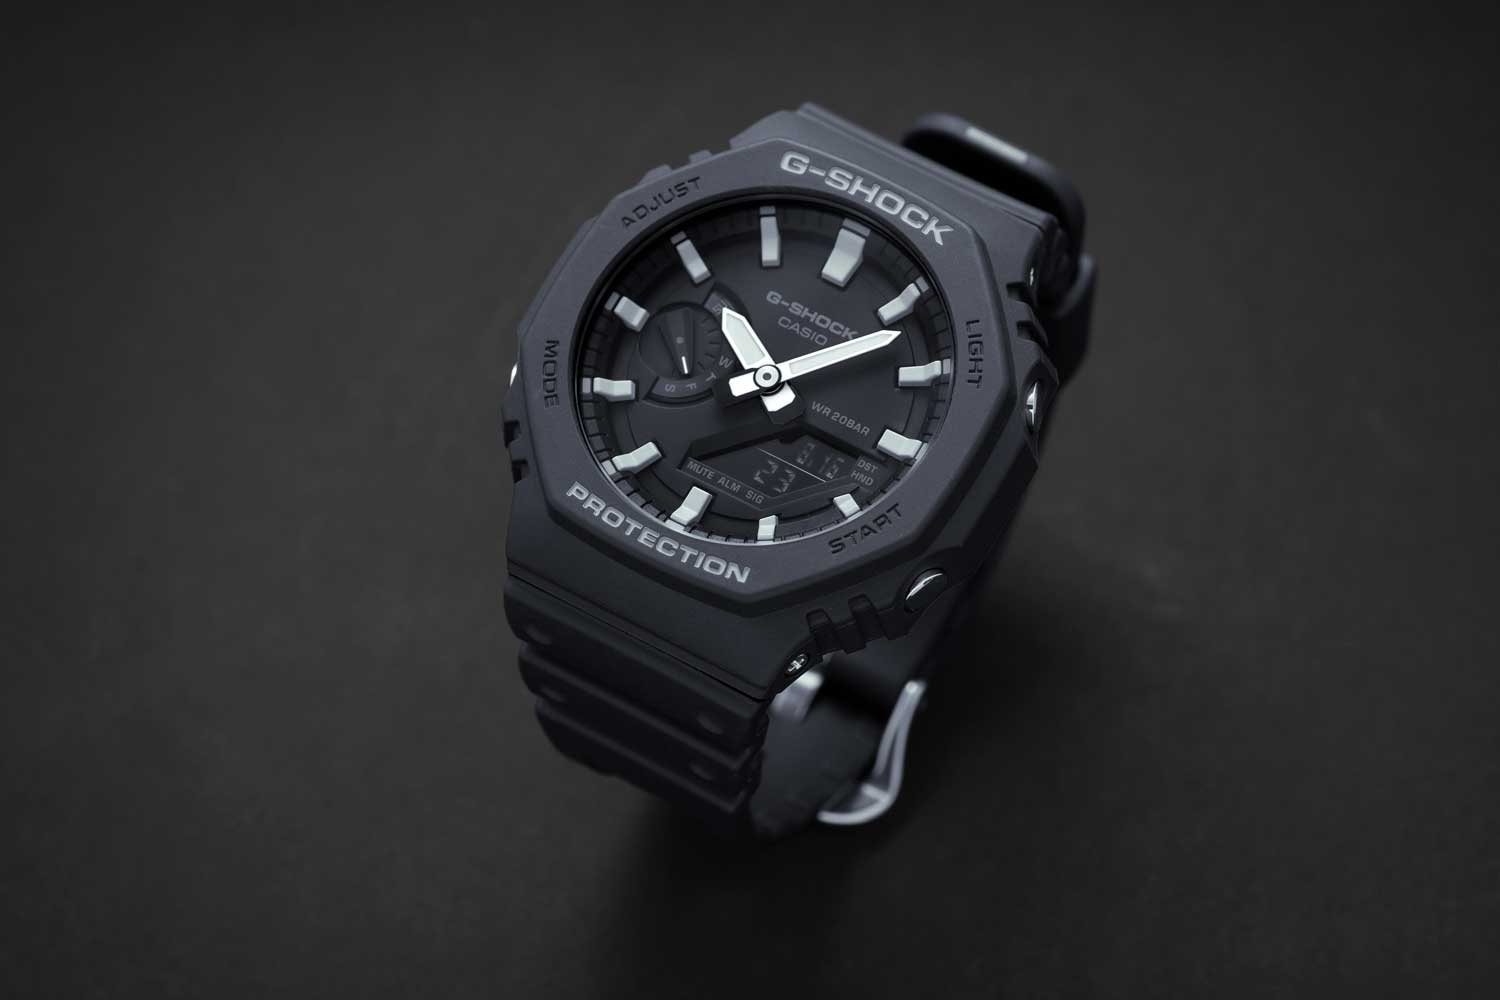 The Casio G-Shock GA-2100 in black with grey accents (Image © Revolution)